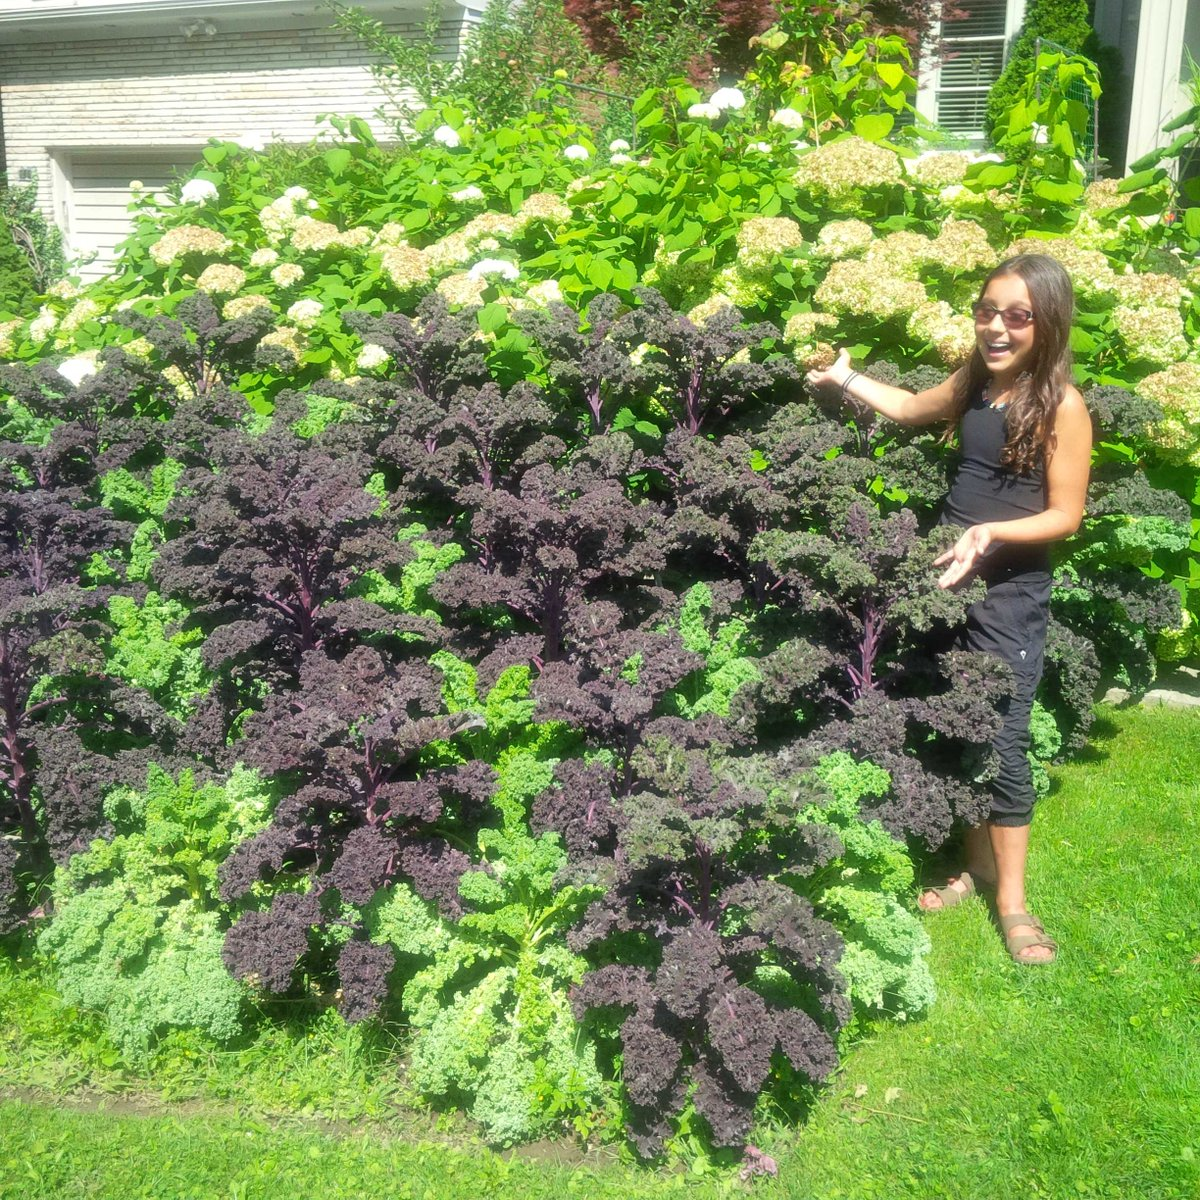 My very own forest of #kale --> http://t.co/1esIuE5UUW